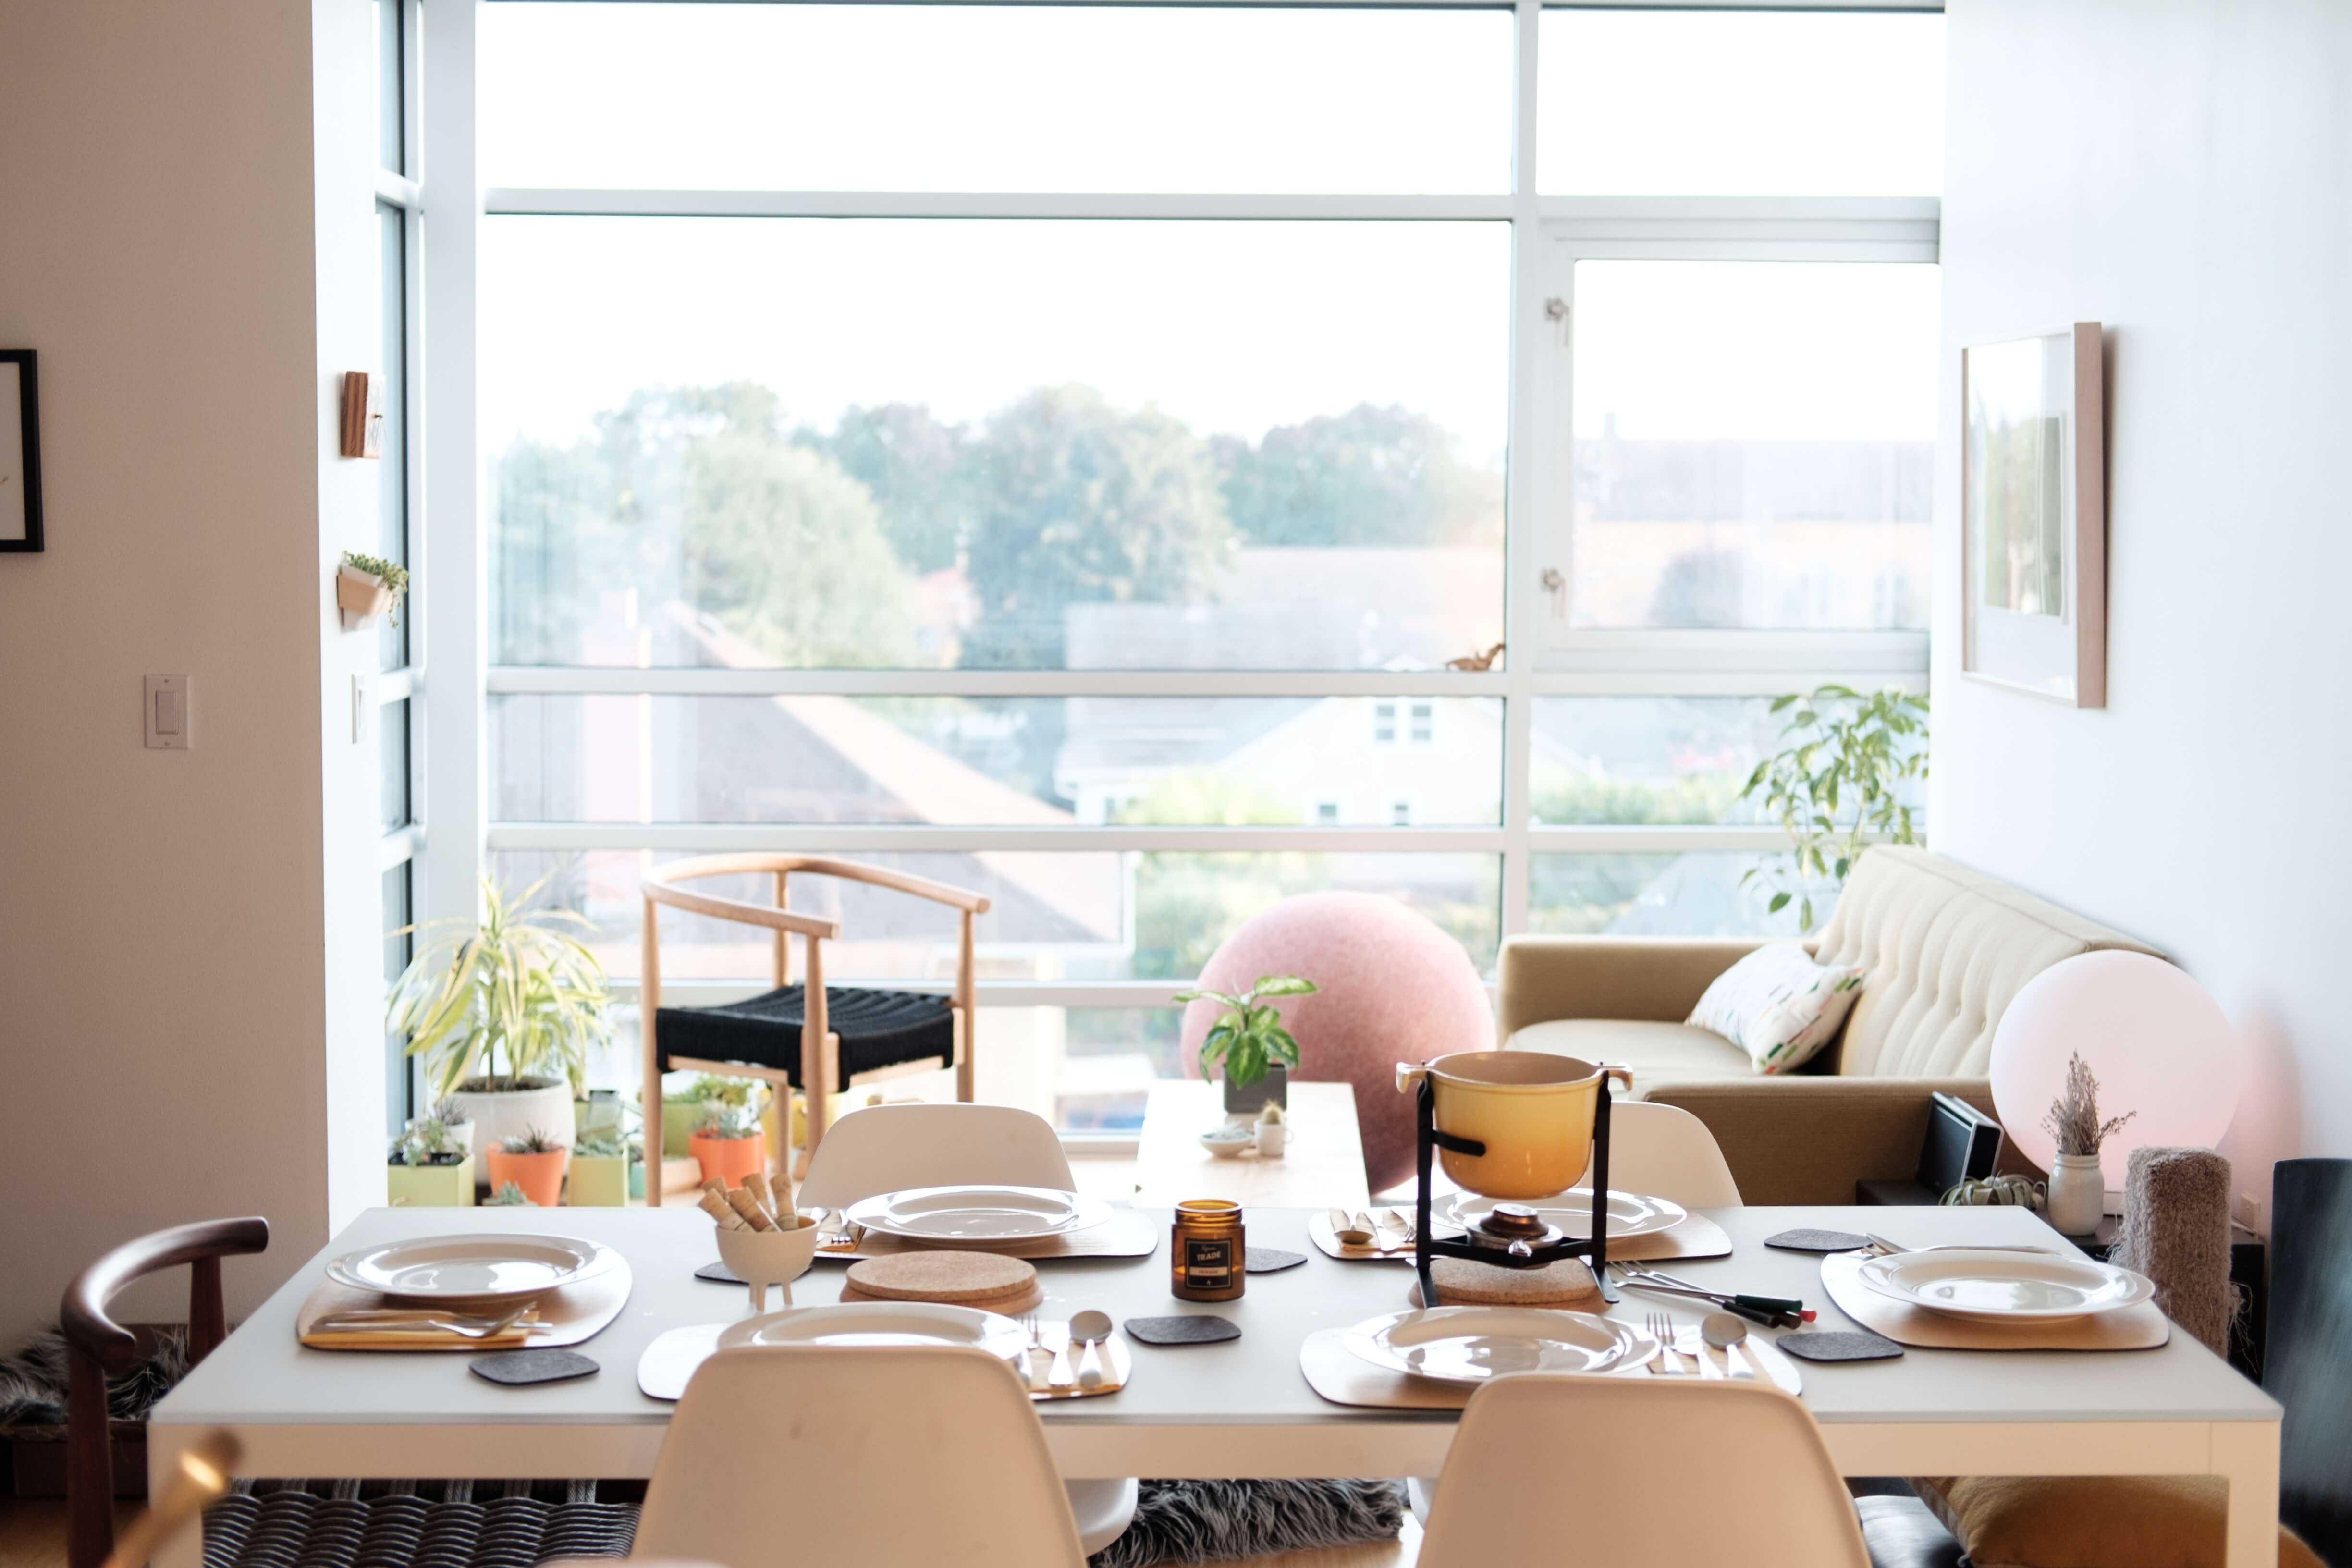 Coliving Spaces: a Growing Trend In Accomodation